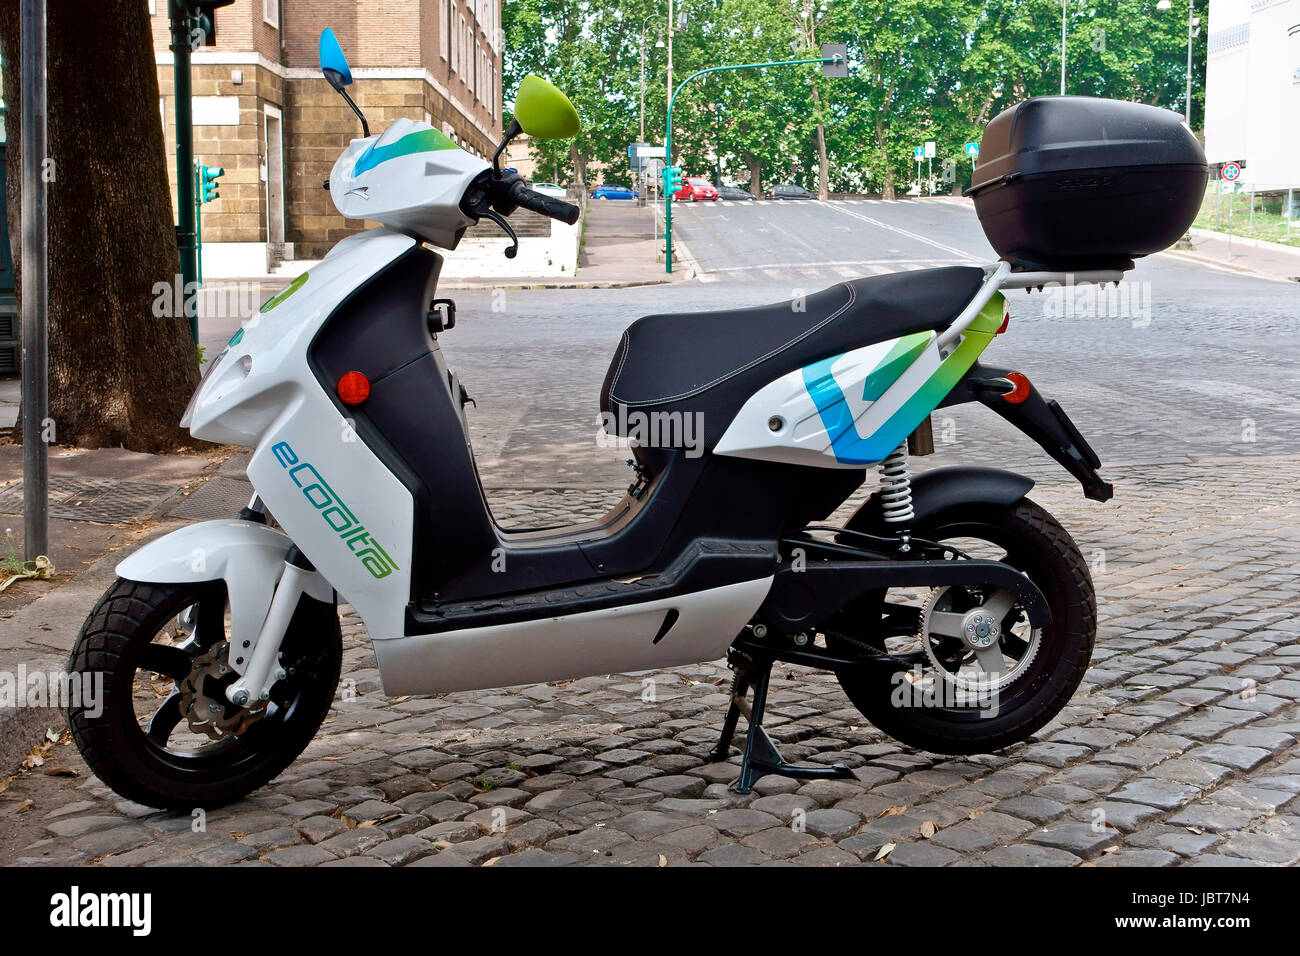 Ecooltra electric scooter sharing parked perpendicularly. Environment, e-mobility, emission-free, eco-friendly, - Stock Image